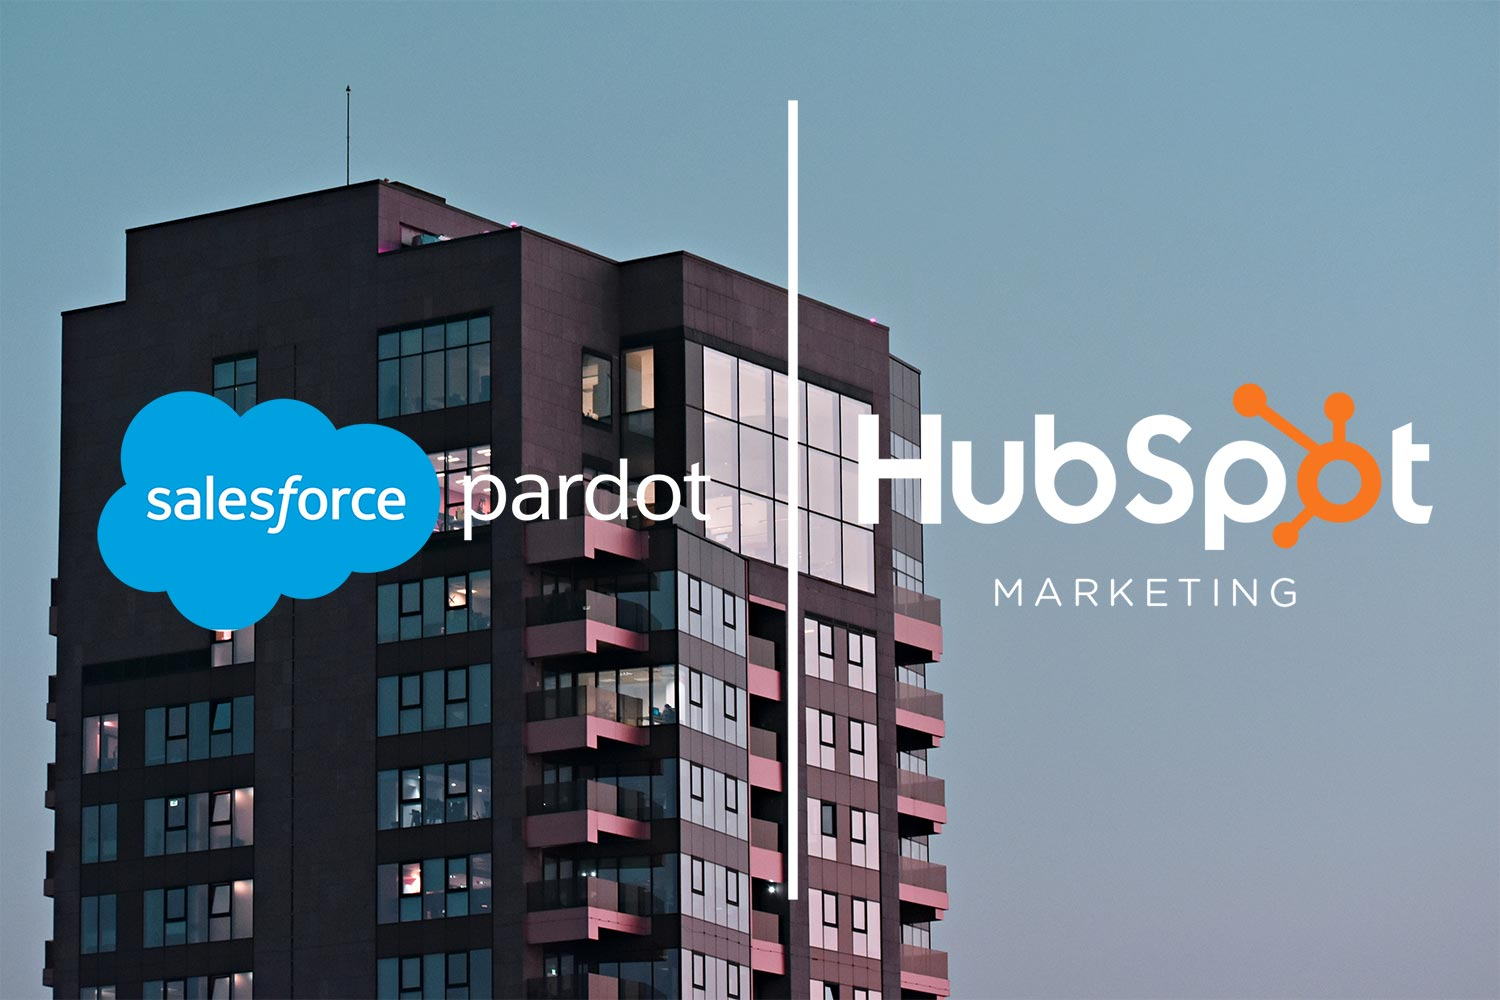 Salesforce Pardot and Hubspot Marketing logos in front of a large high rise office building